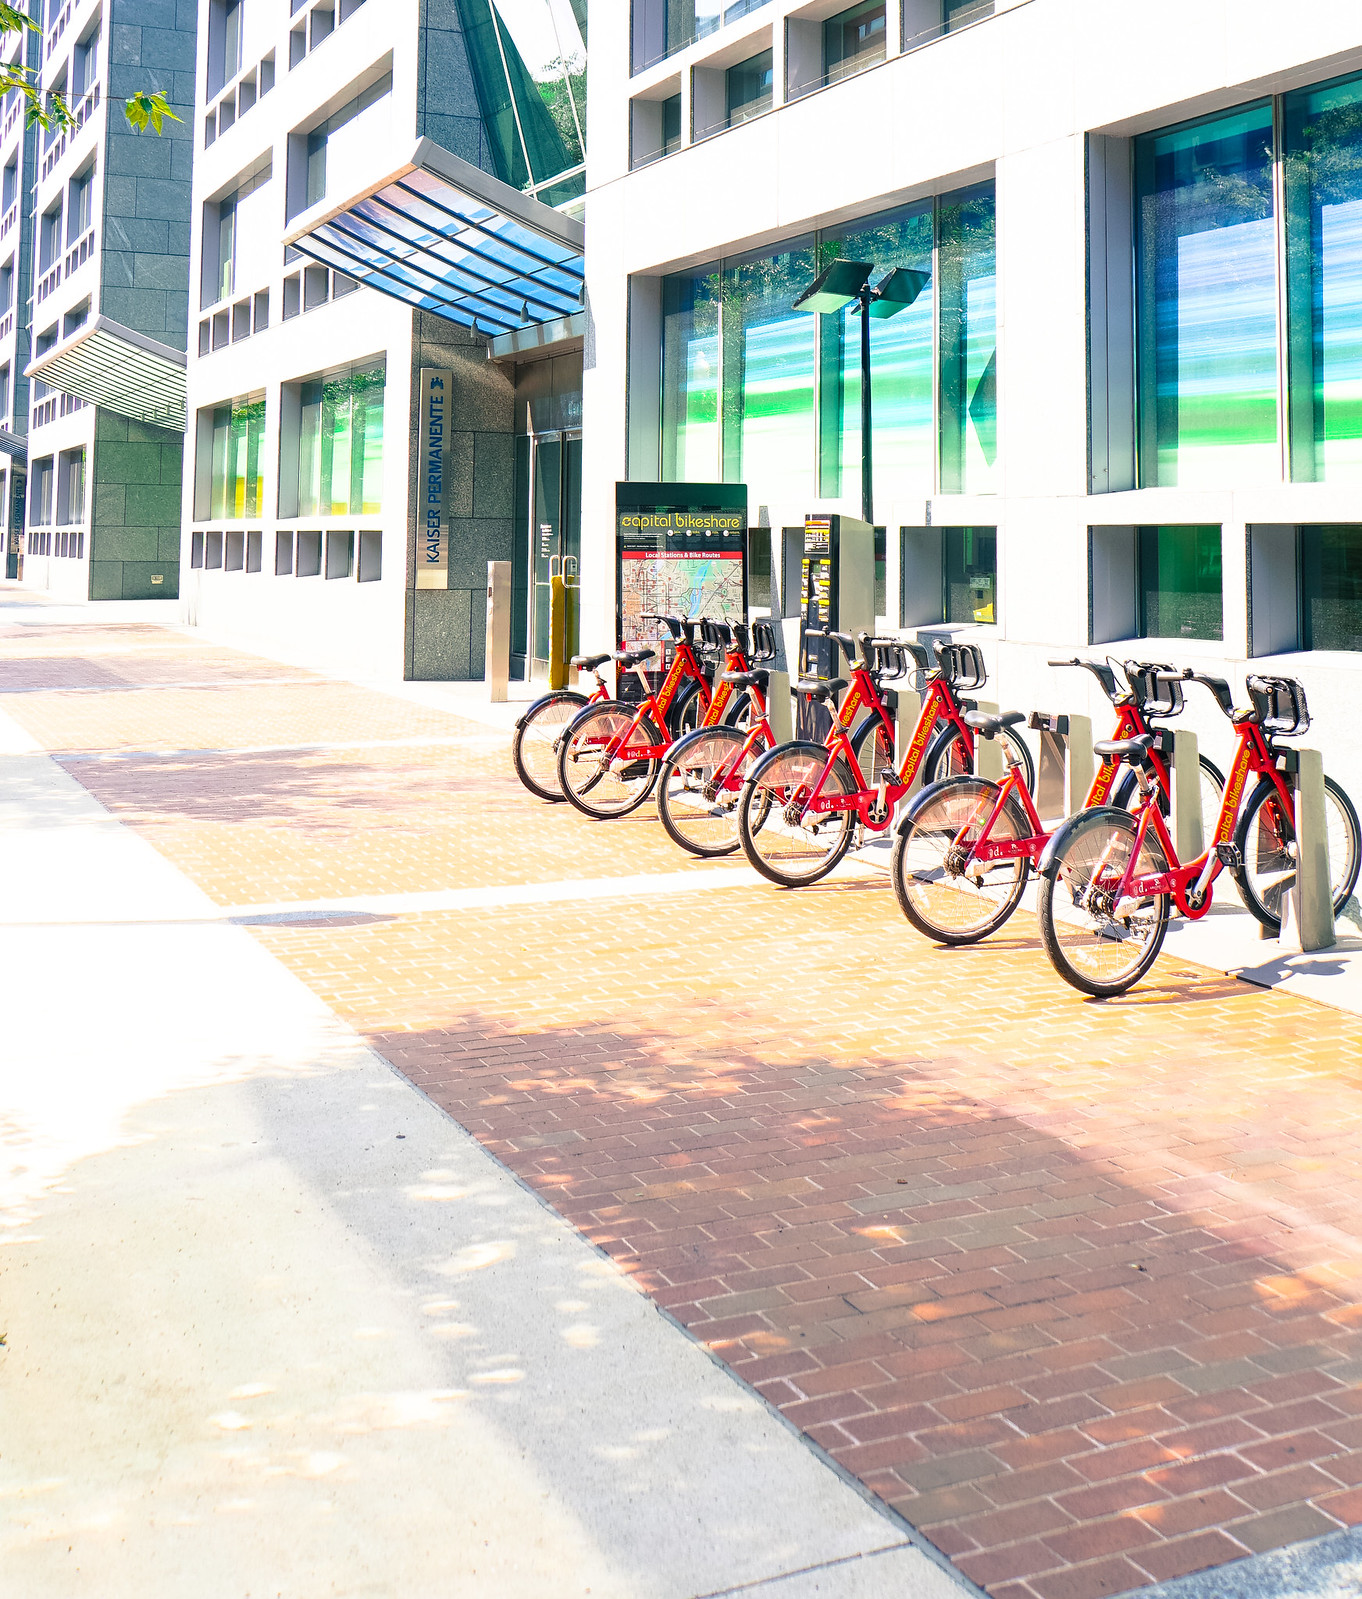 Thanks for Publishing my Photo, In Equitable bike share systems: Removing barriers to access - D.C. Policy Center